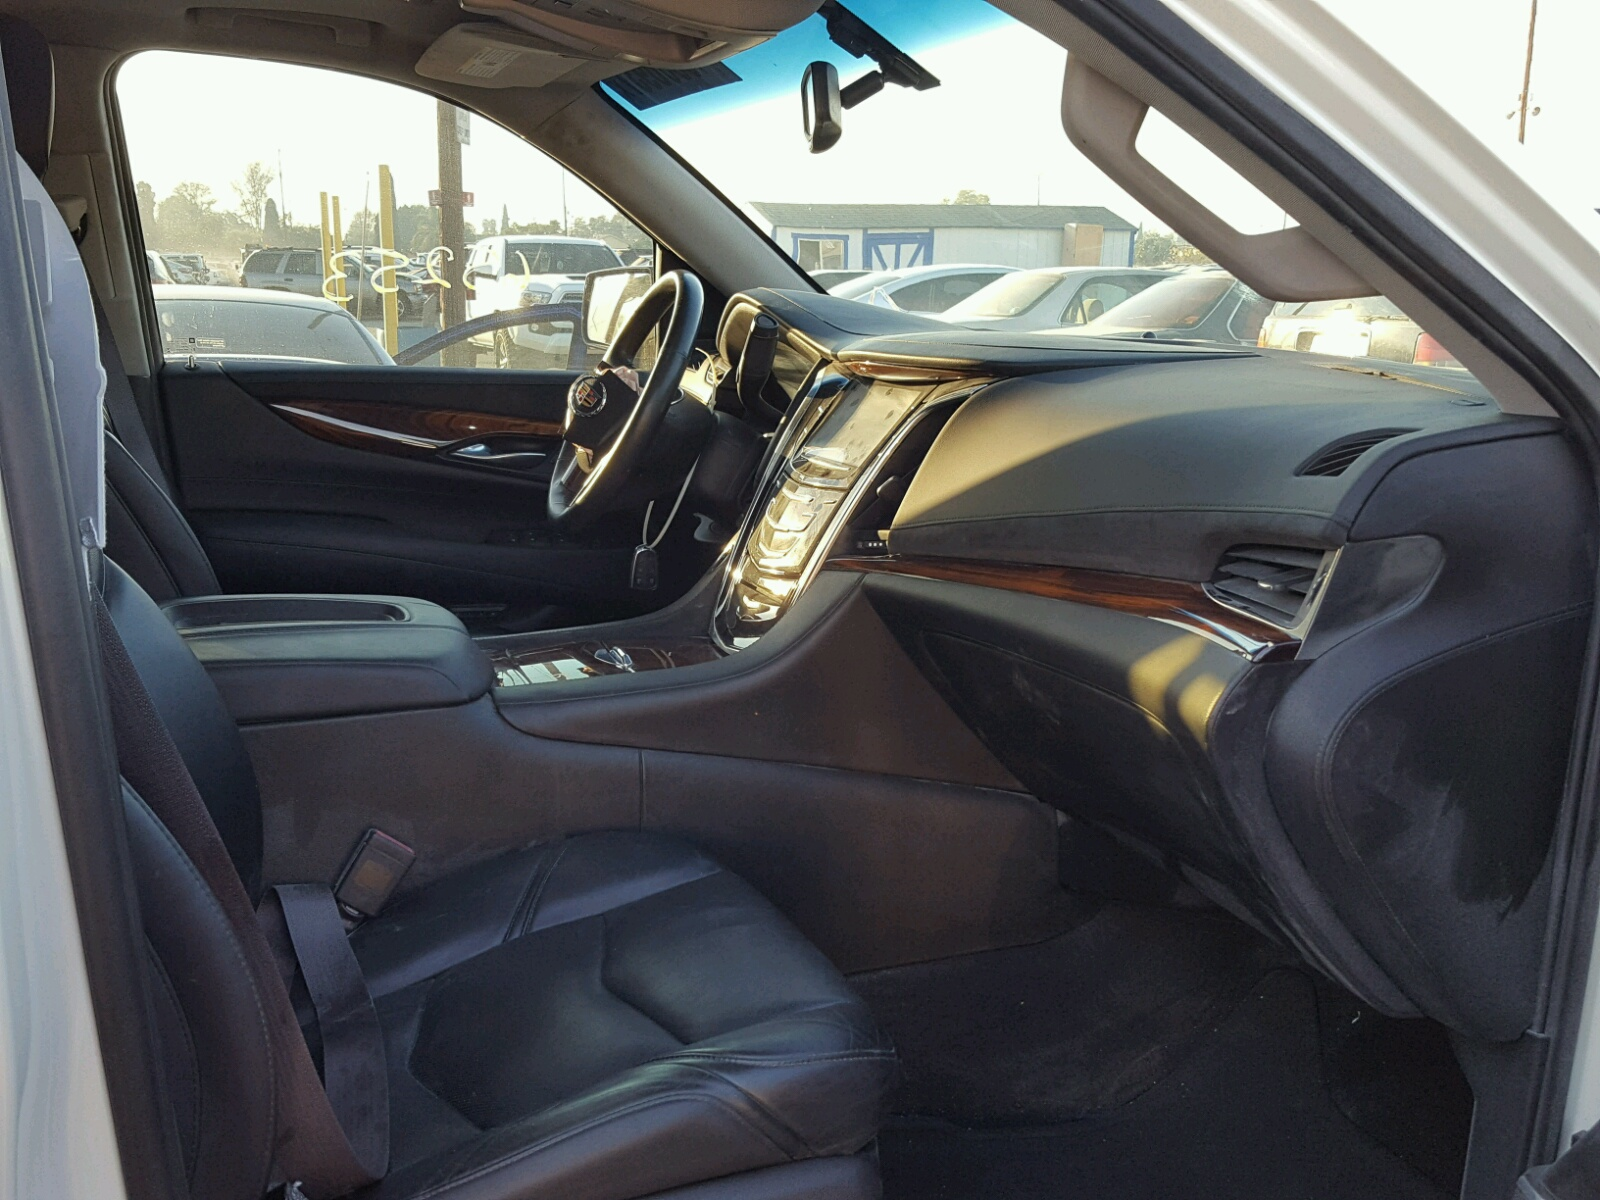 Salvage luxury cars for sale los angeles 8